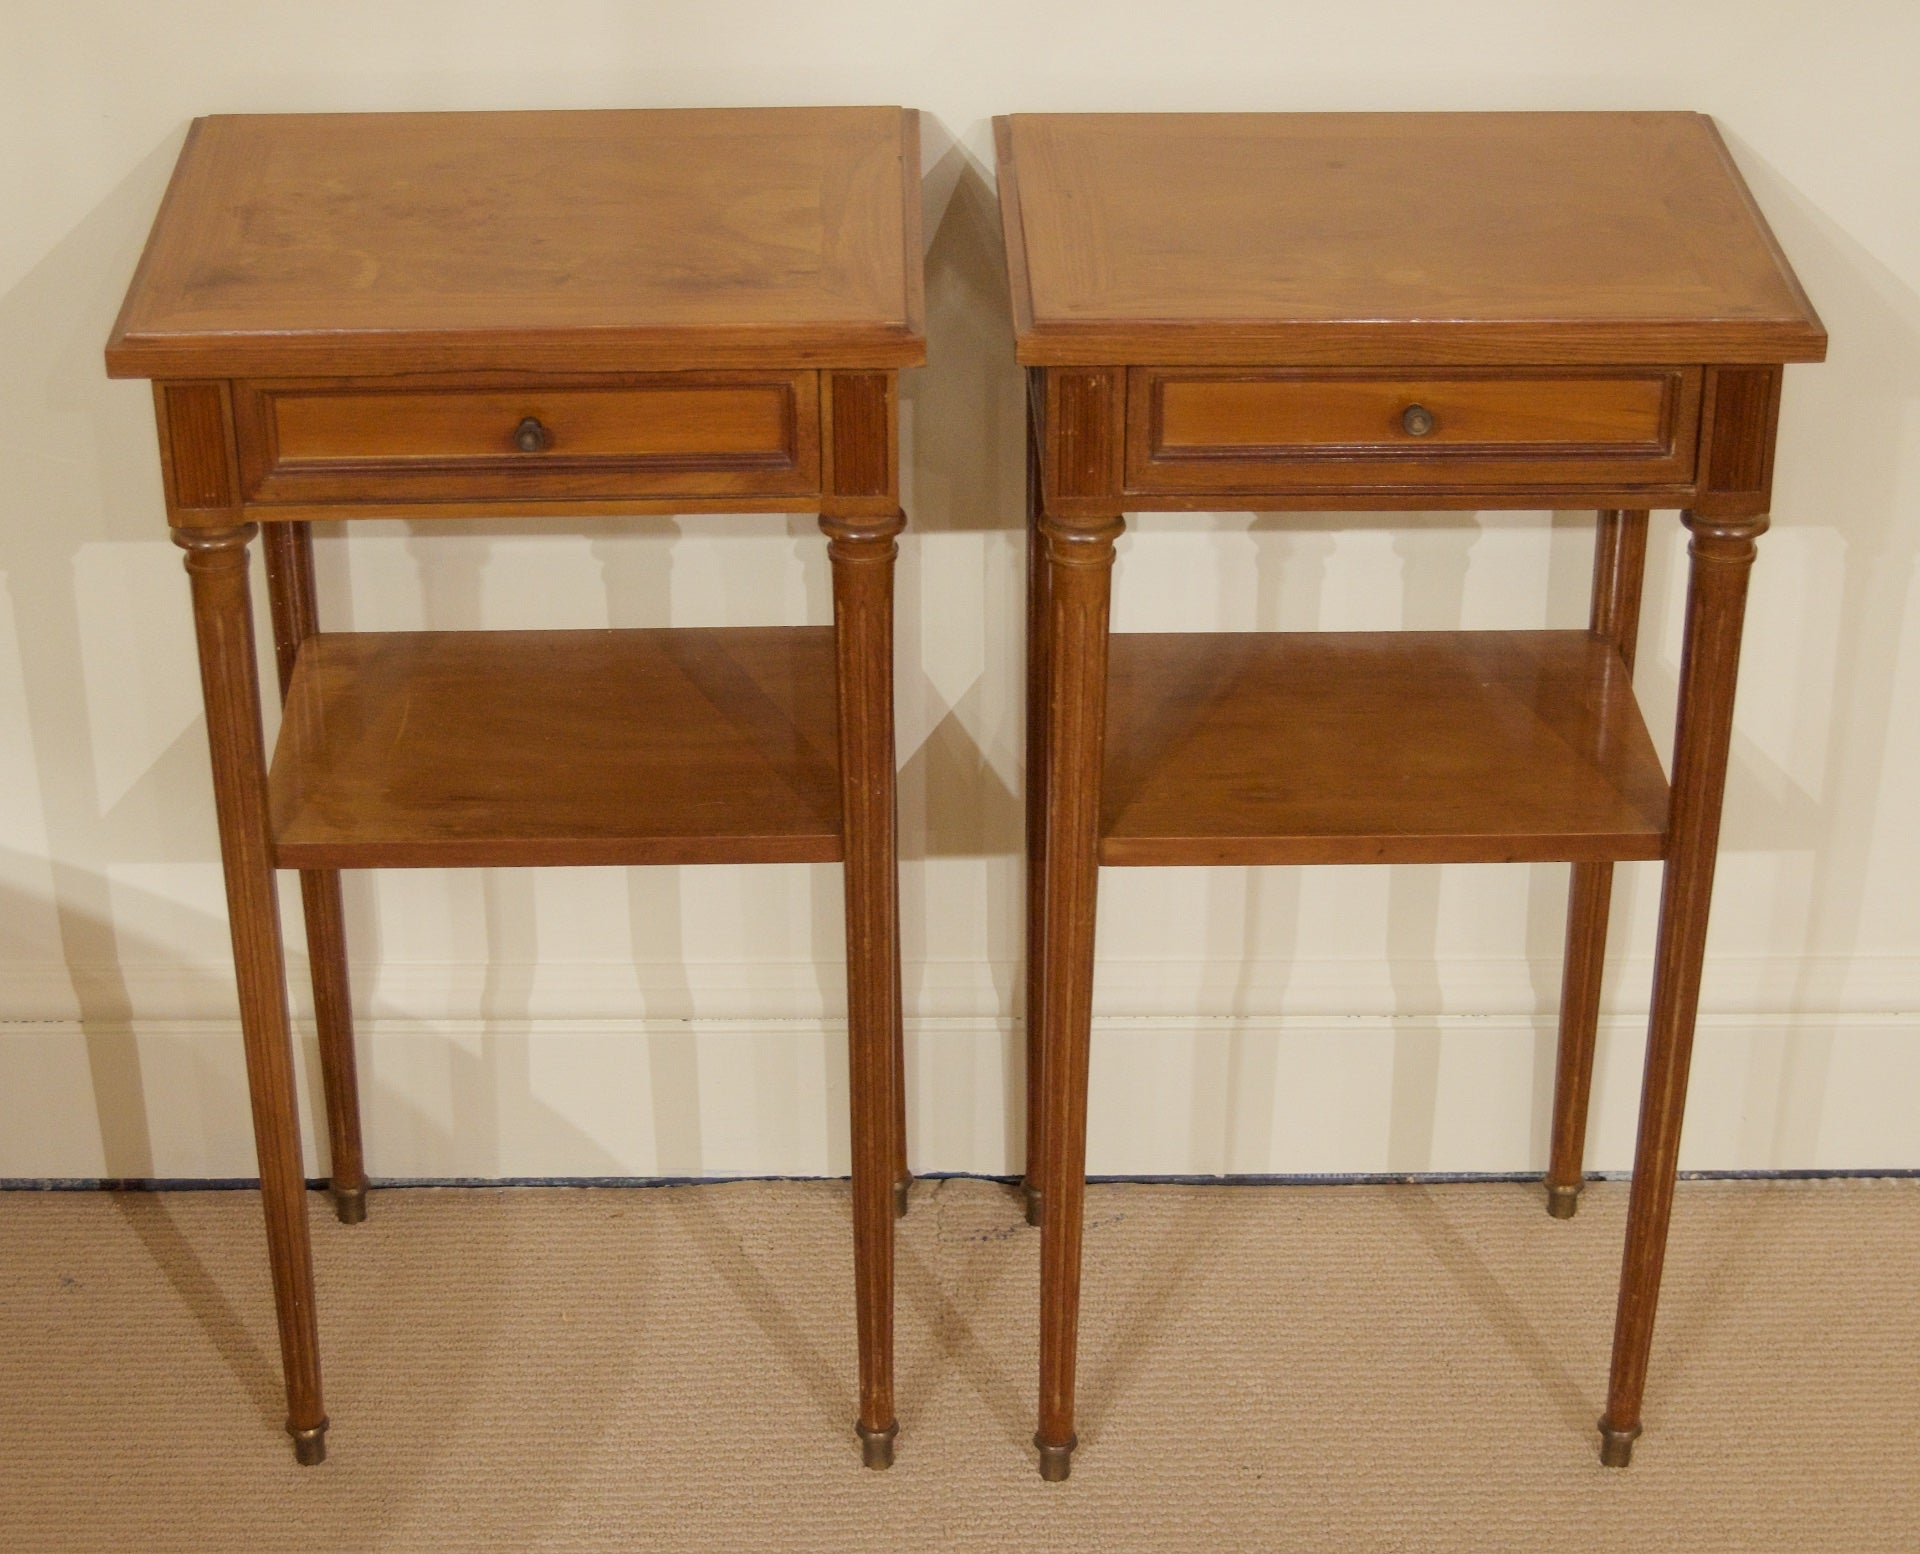 Pair of Regency Style Nightstands or End Tables